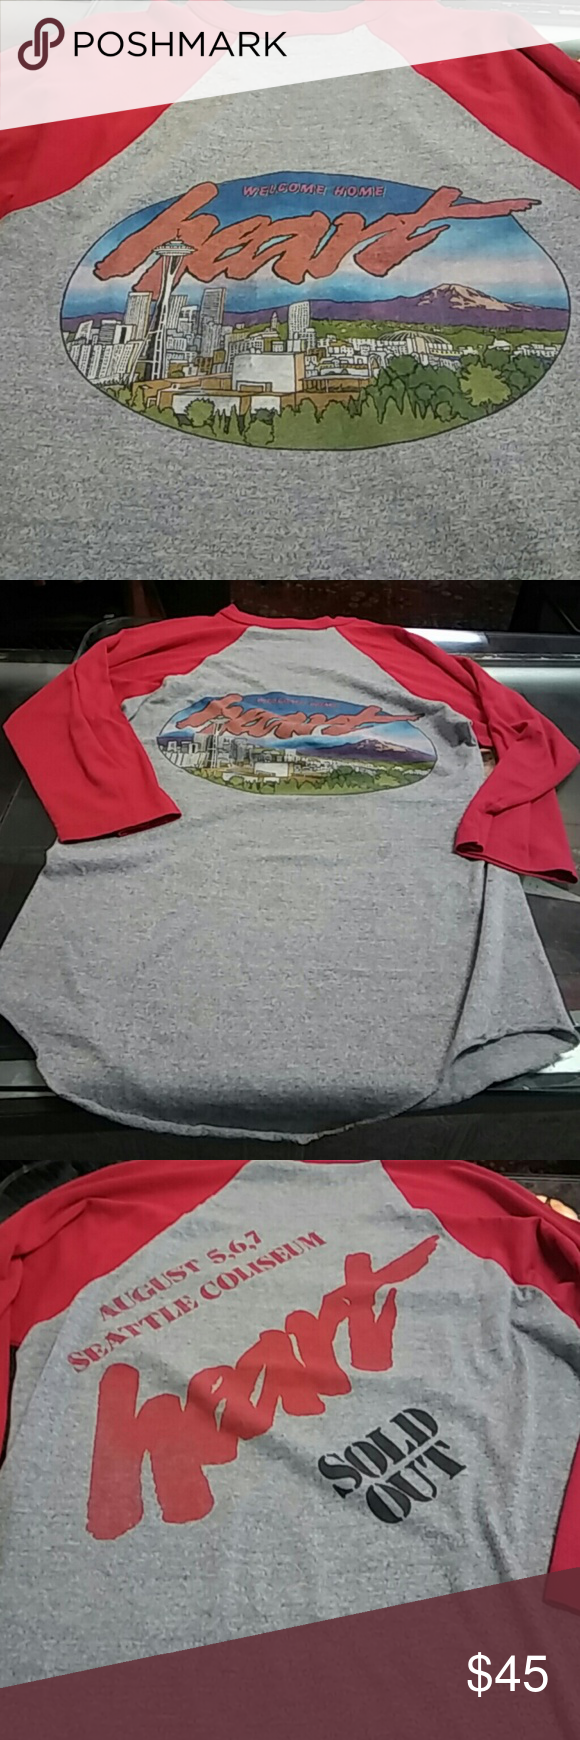 "Vintage ""heart"" band baseball tee Eu vintage condition! Red sleeves grey body. Hearts welcome home shows at seattle coliseum.graphic of seattle wa on front. . idk what year. Made in USA polyester/cotton.medium.unisex Vintage Tops"